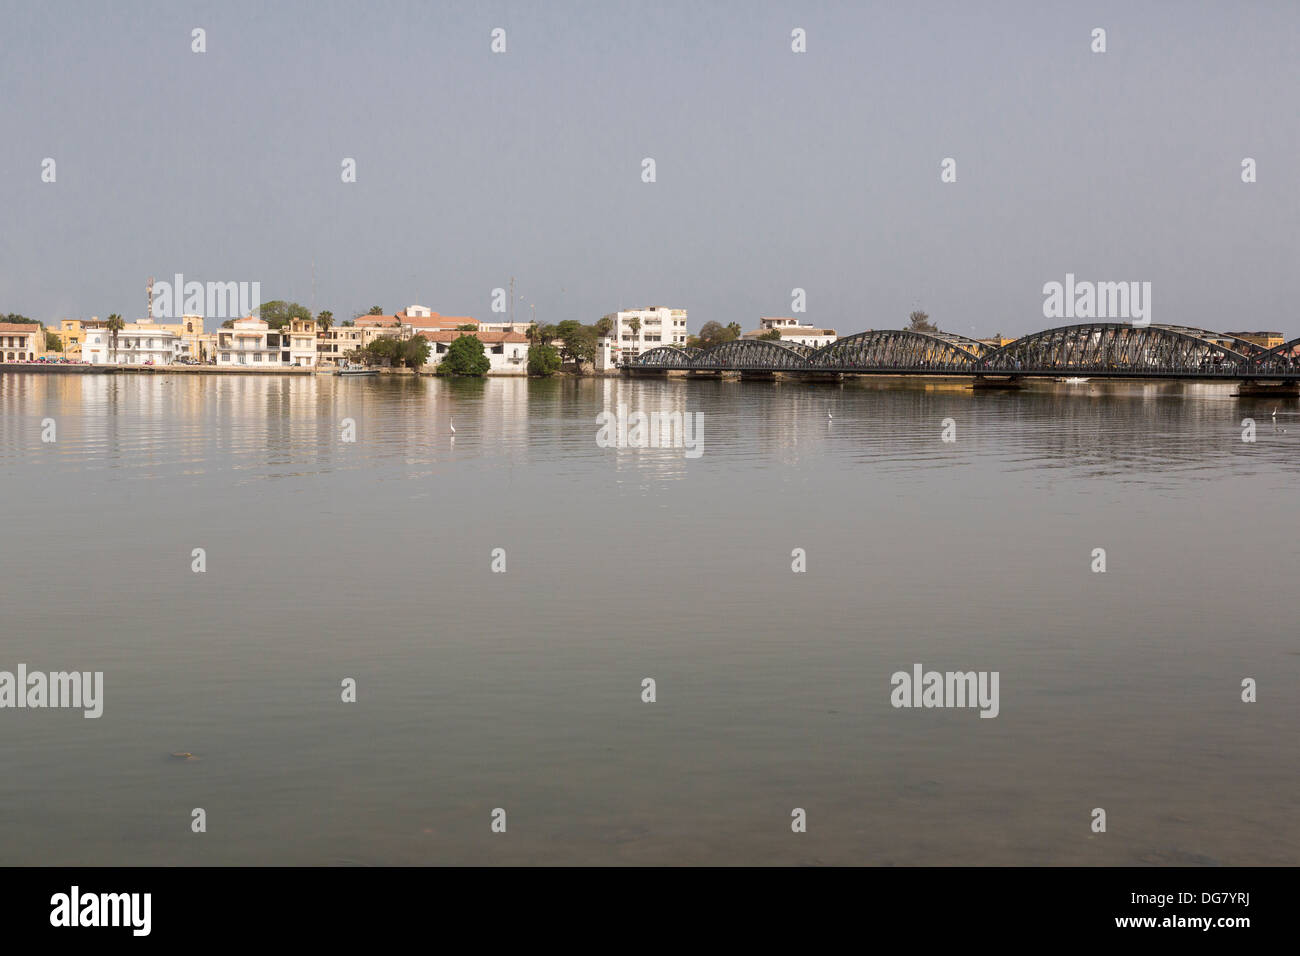 Senegal, Saint Louis. View from the Mainland, across the River Senegal, showing Pont Faidherbe, built 1897. Stock Photo